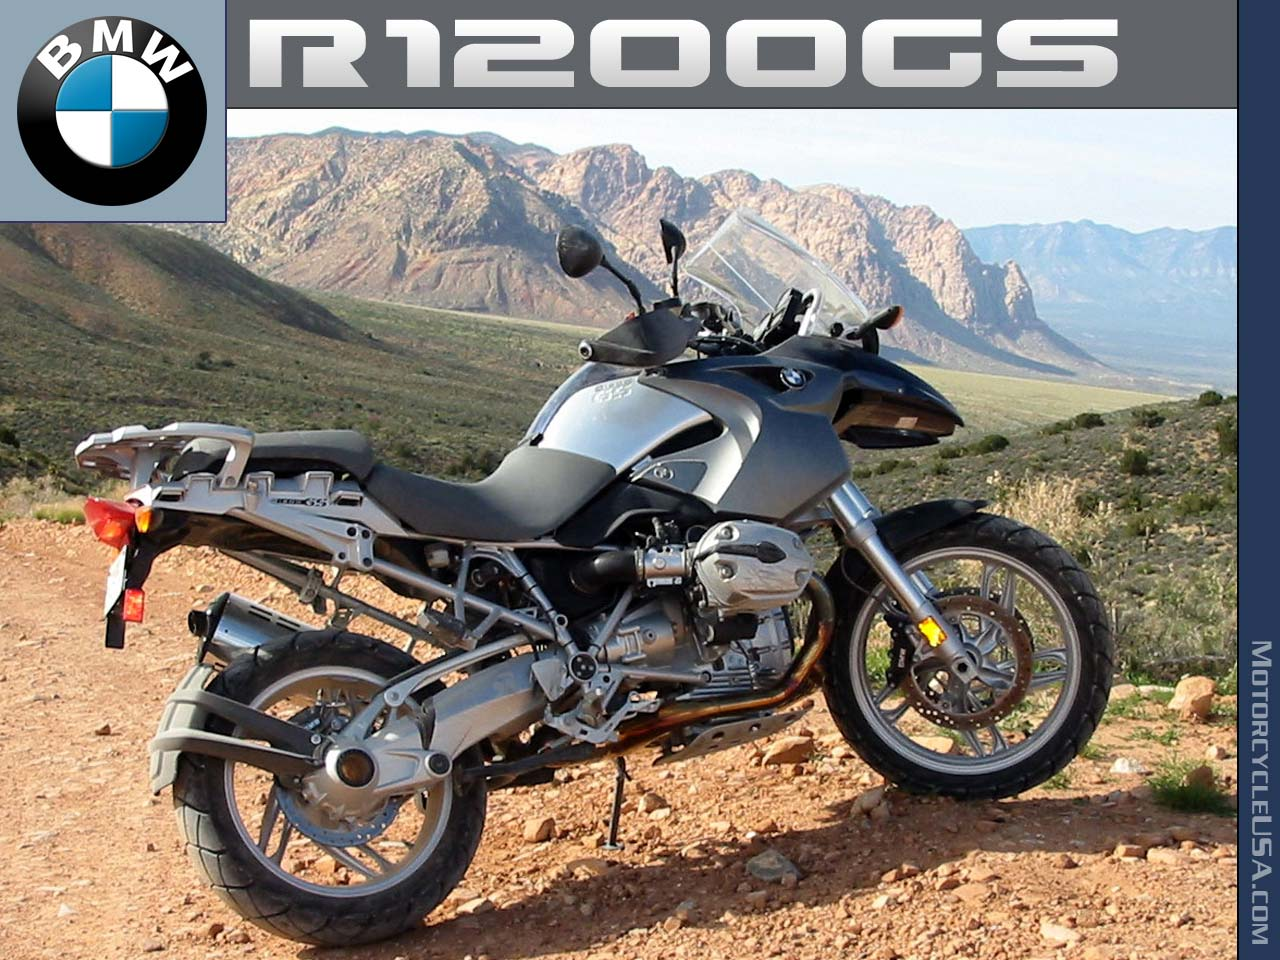 BMW R1200GS 2004 images #7950